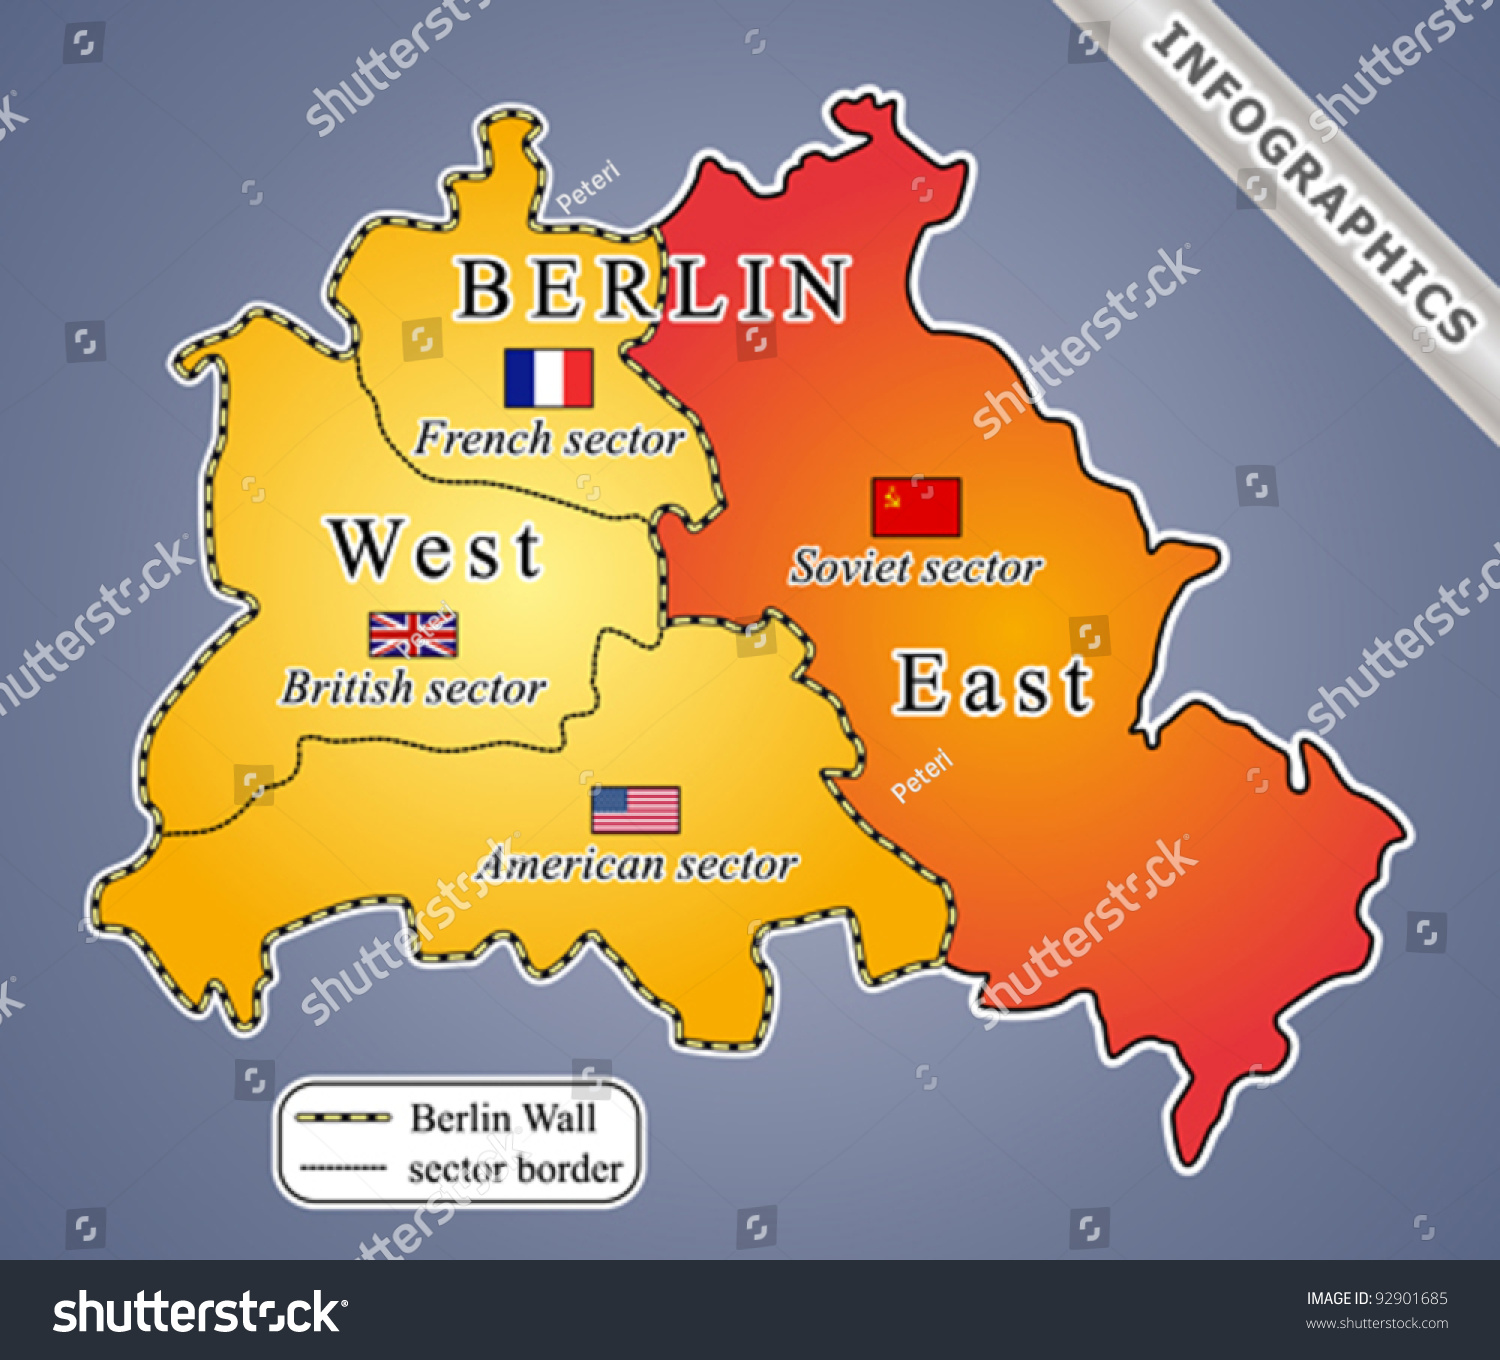 Map Of Germany Cold War.Berlin Map During Cold War Including Stock Photo 92901685 Avopix Com